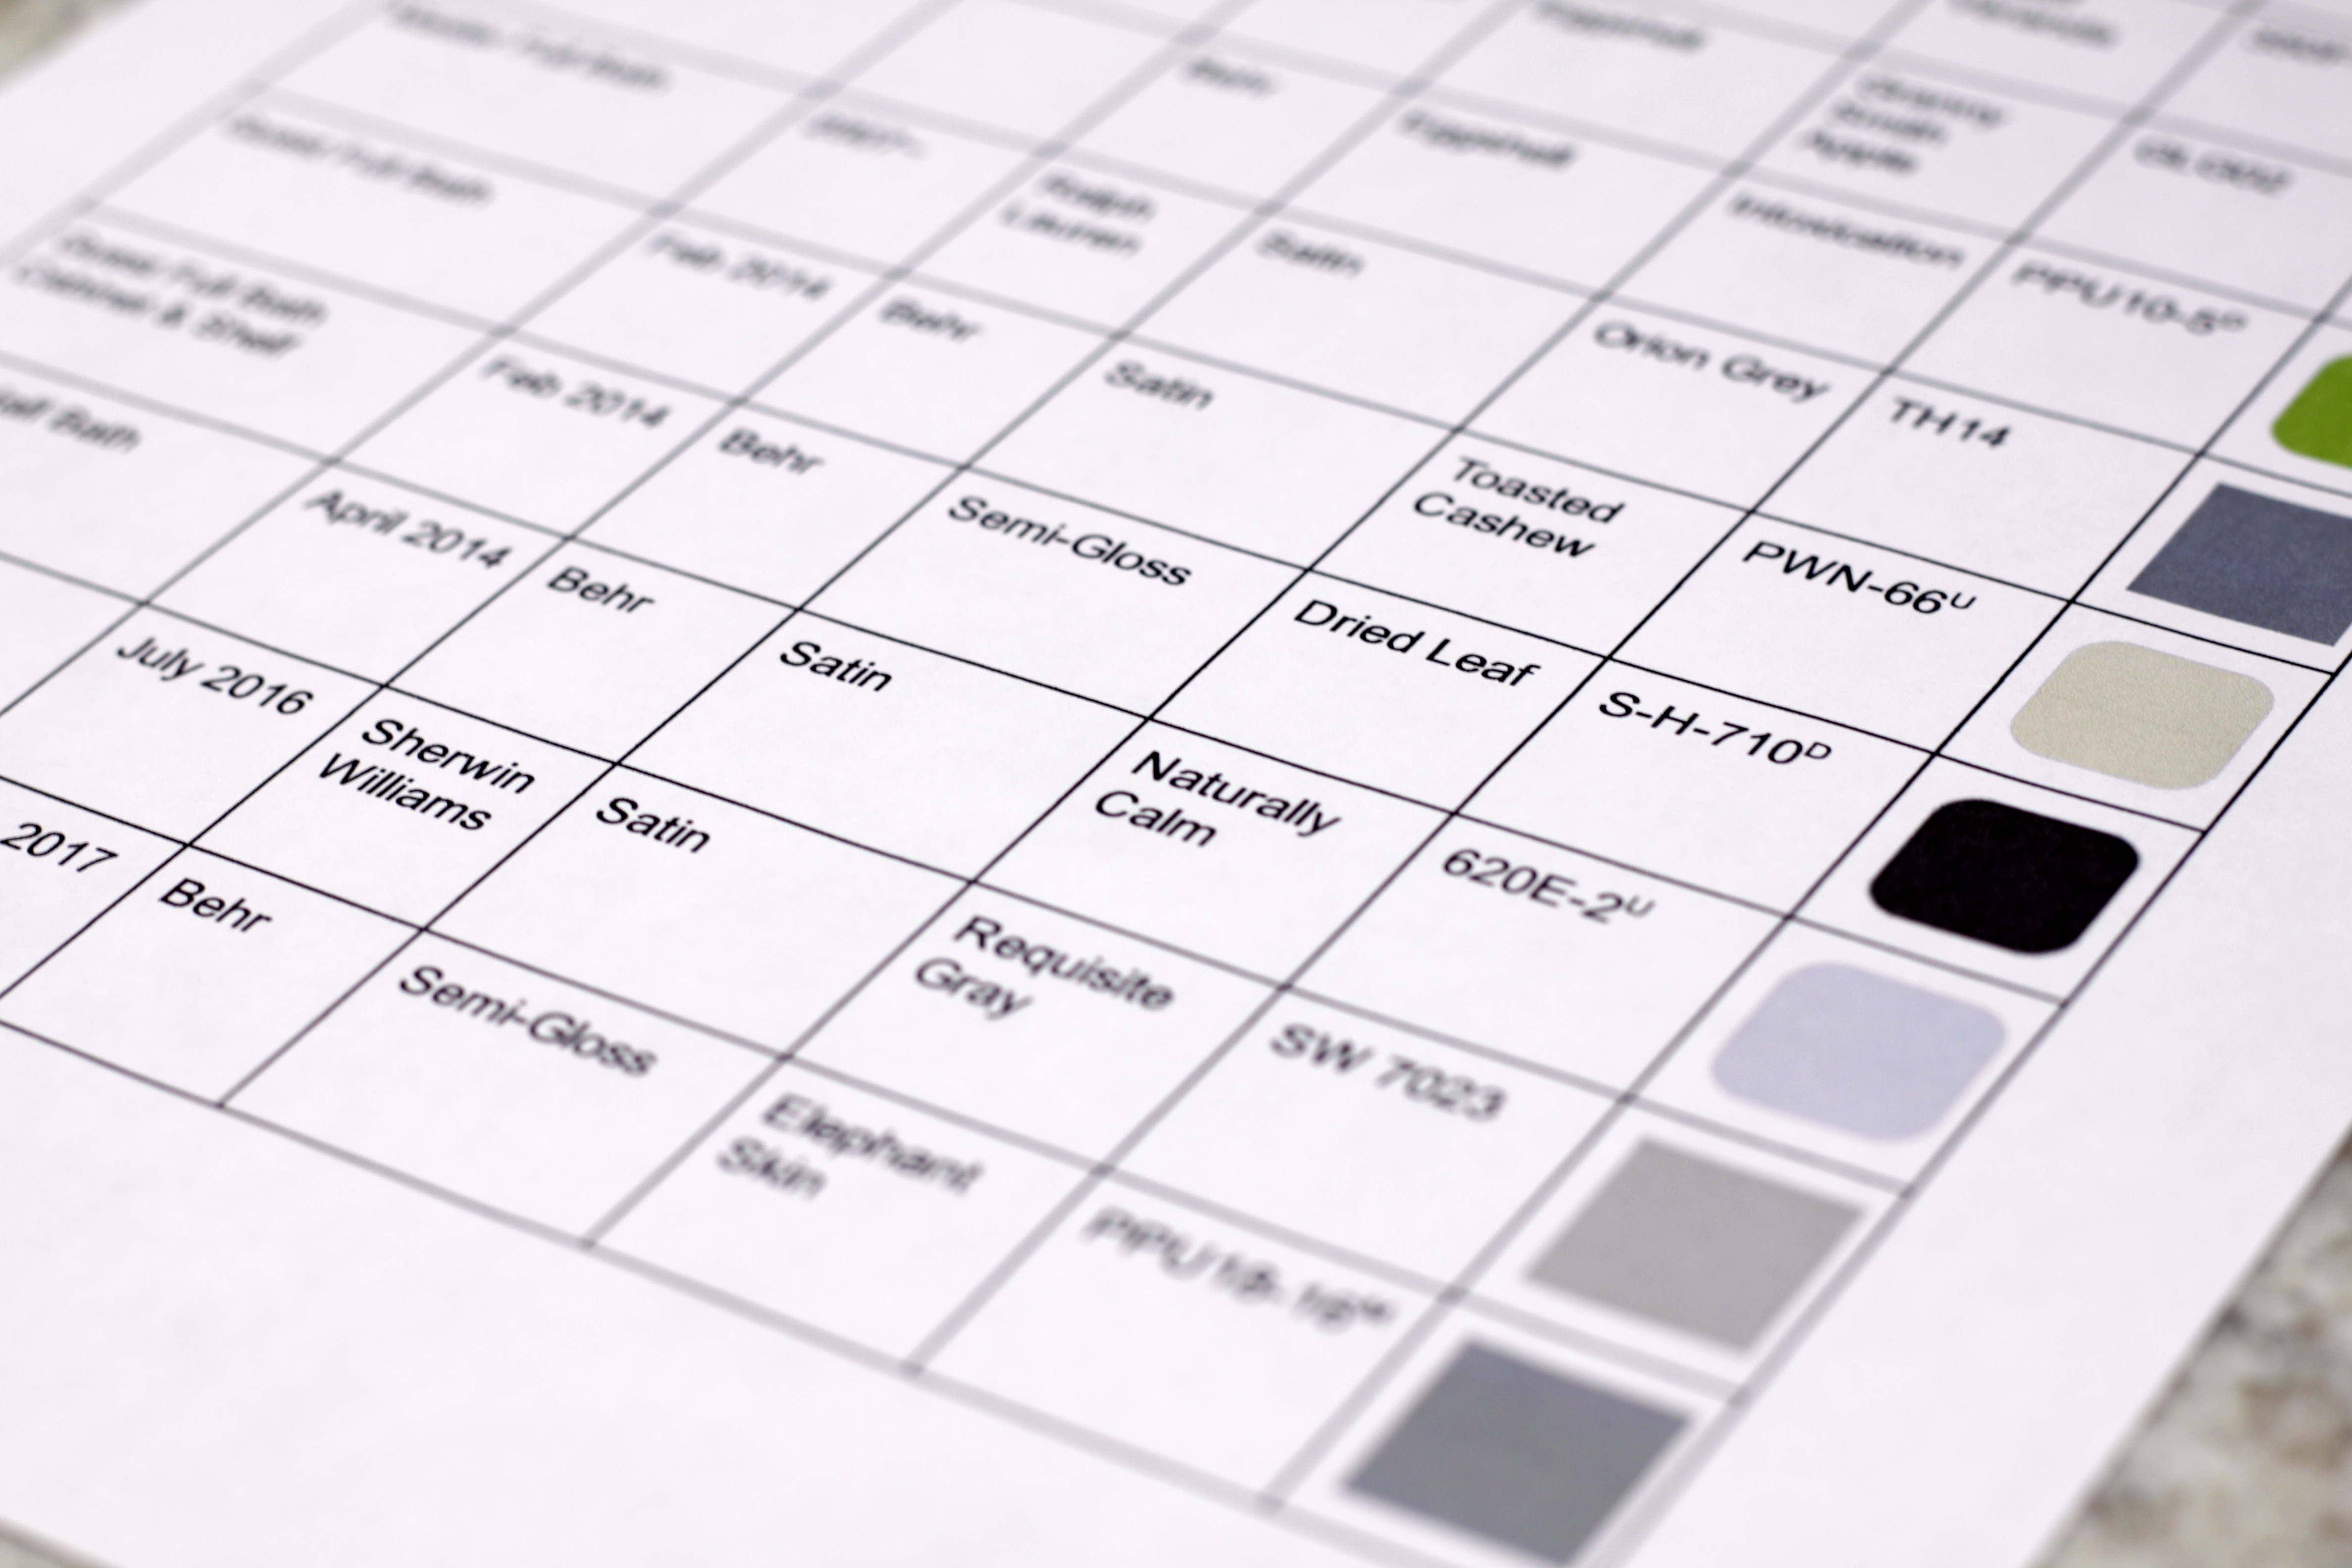 House Paint Swatch Chart Template on Google Drive [Free